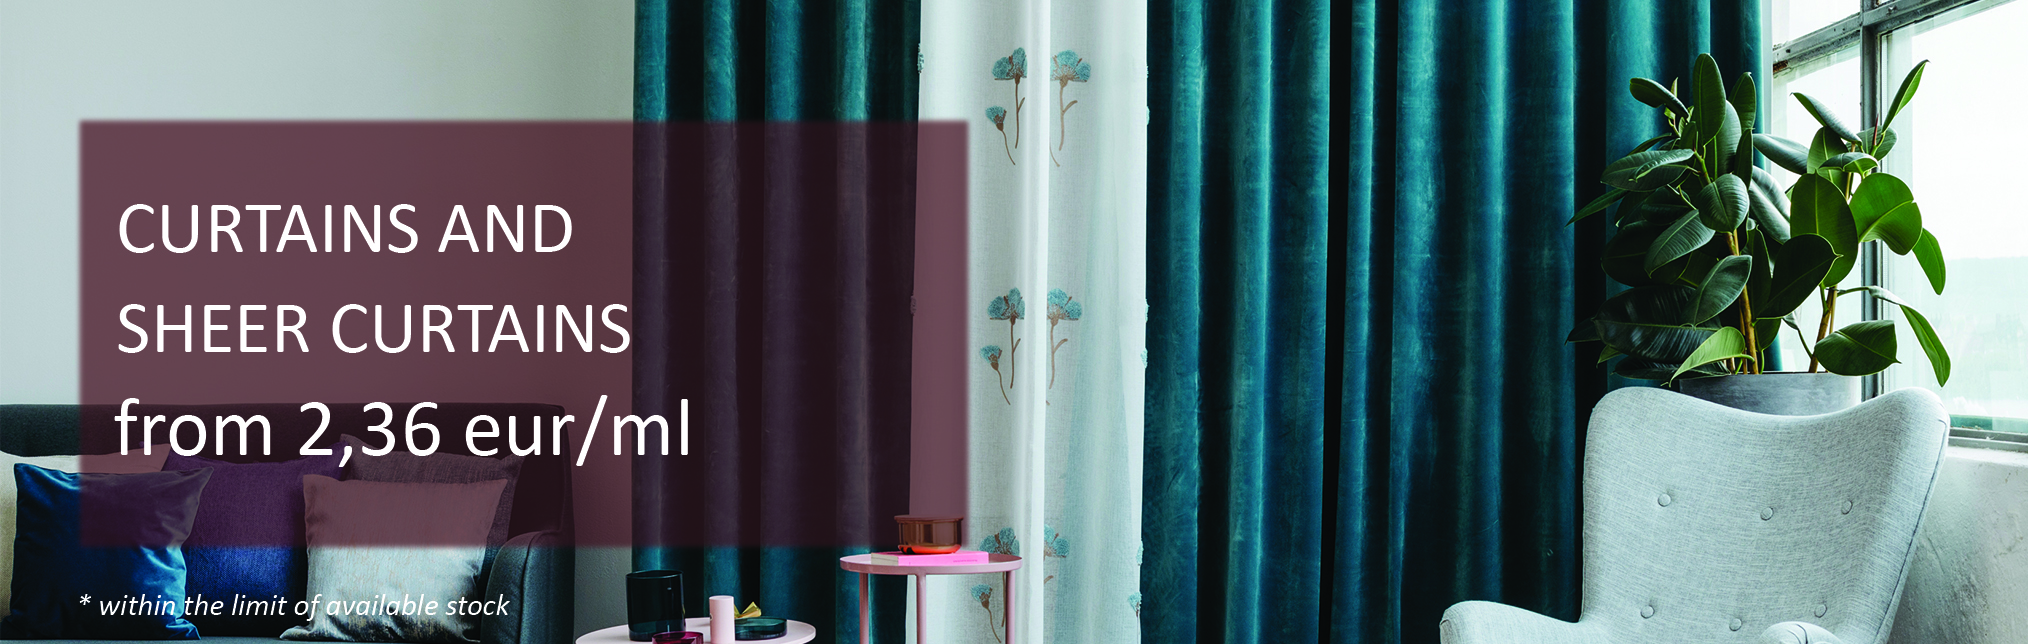 October Promotions: Curtains and Sheer Curtains